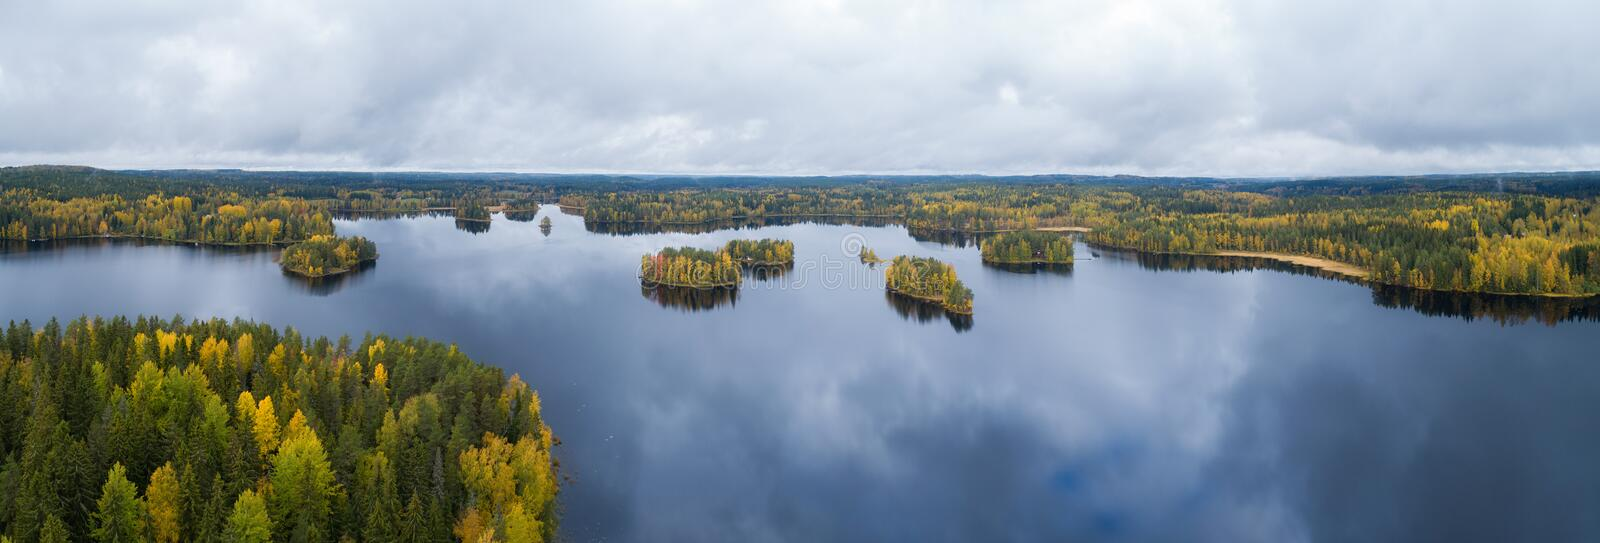 Beautiful panorama of the lake and green forest, aerial landscape. Cloud reflection on water. Environment concept. Finnish nature. royalty free stock image